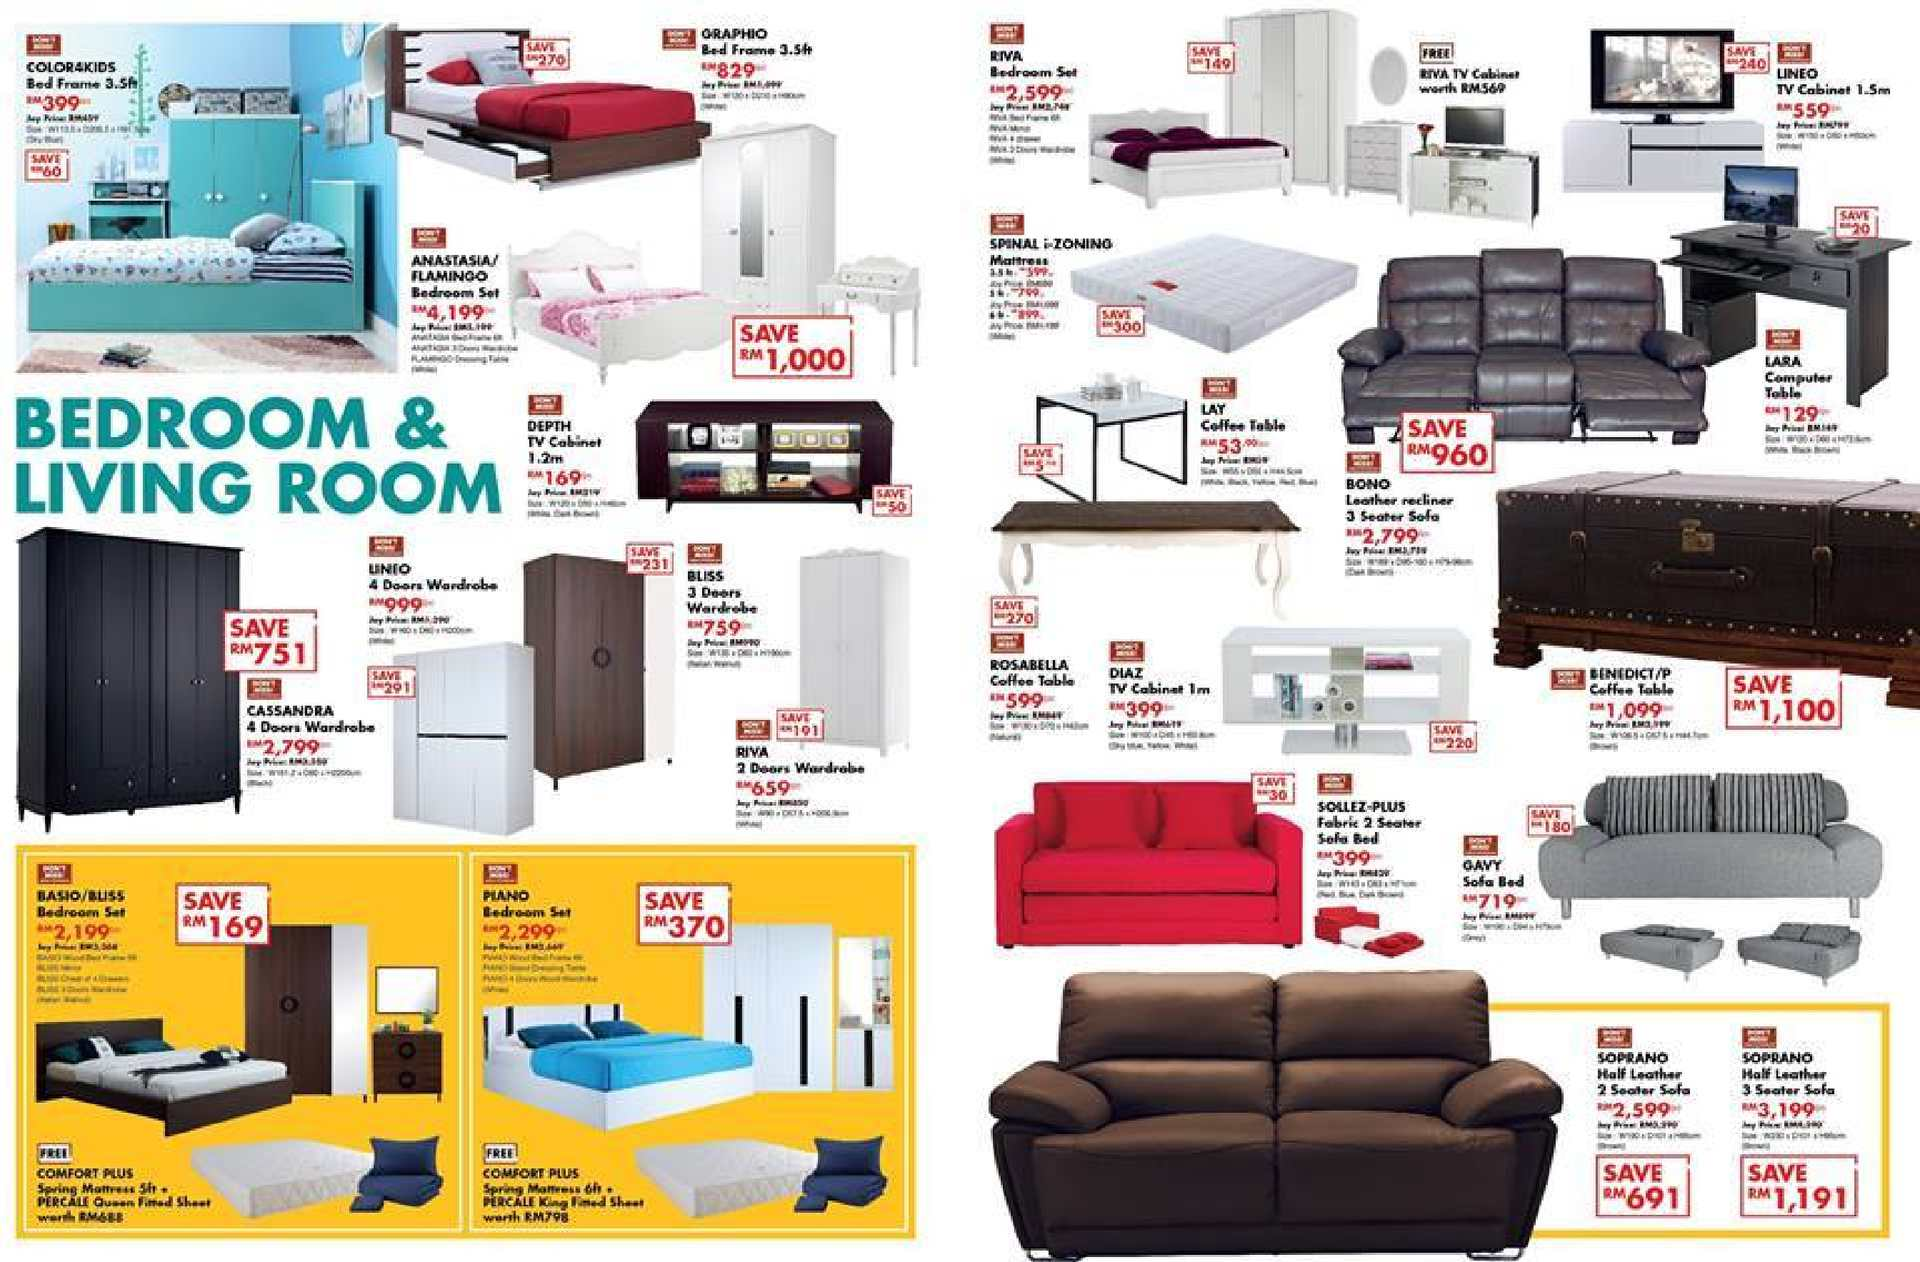 Calam o mix match for bedroom living room at index living mall aeon while stocks last71163 71163 - Maximizing design of living room by determining its needs ...